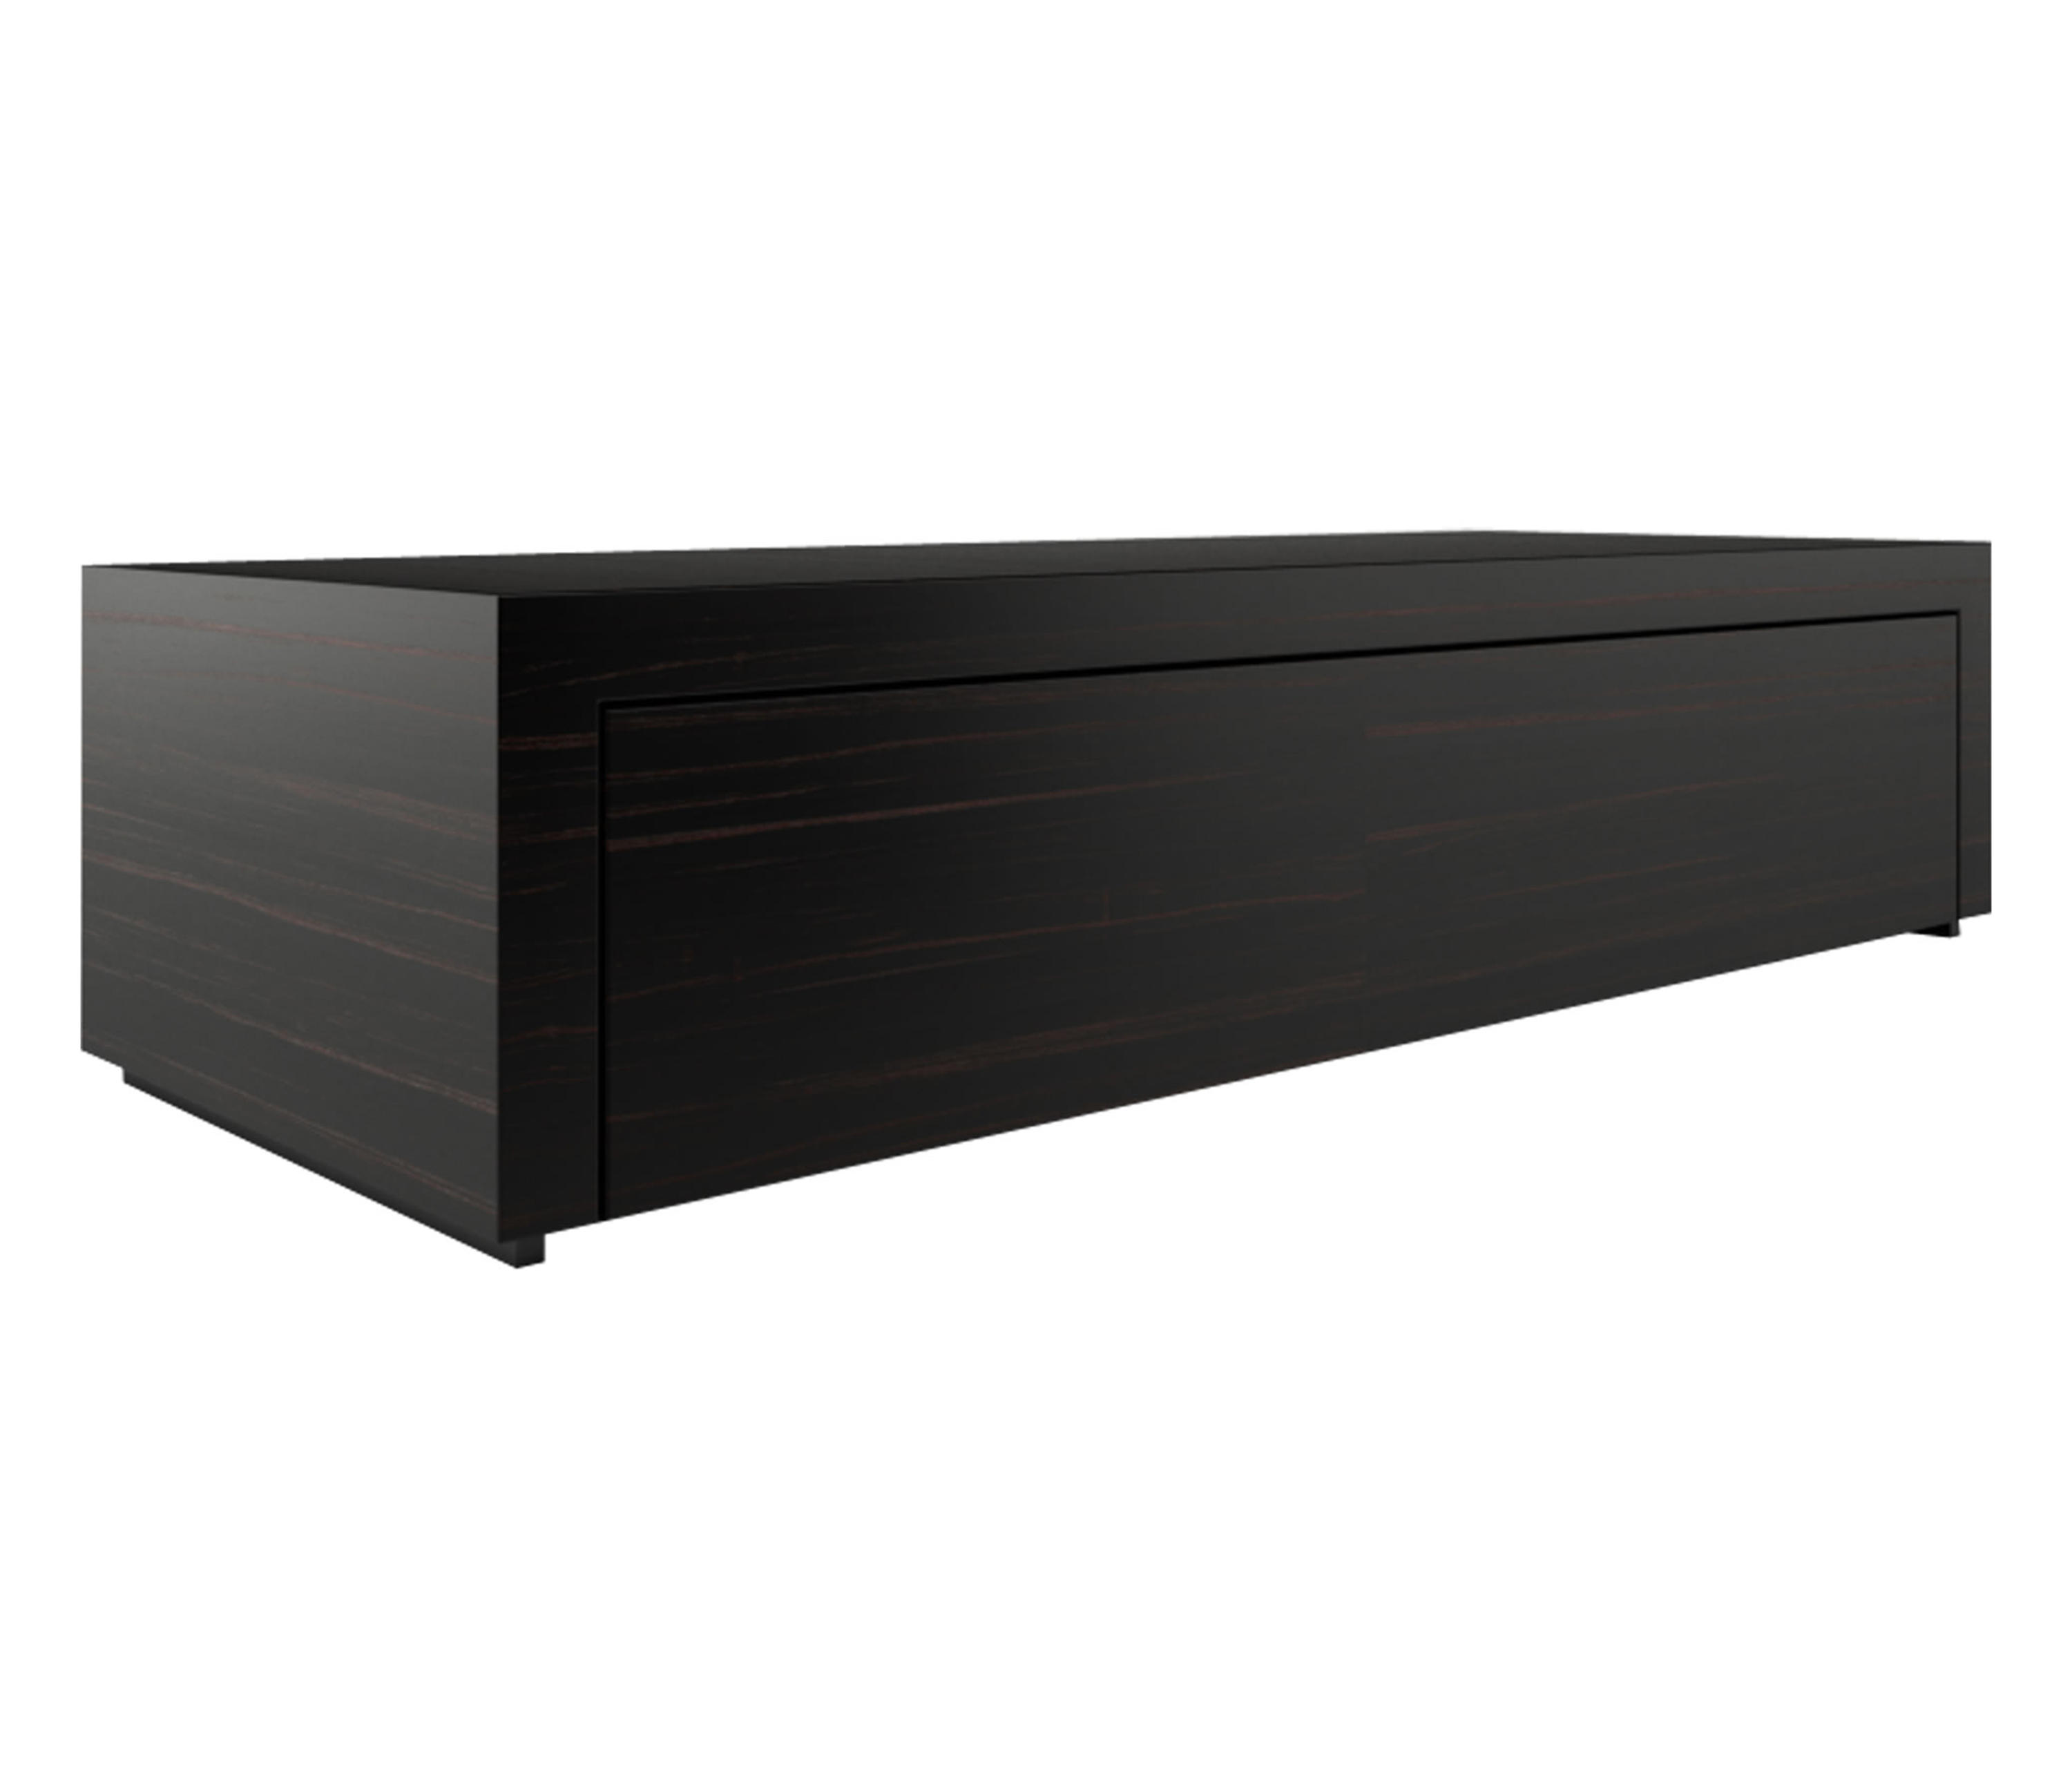 REPOSITIO TV/ Hifi Sideboard By Rechteck